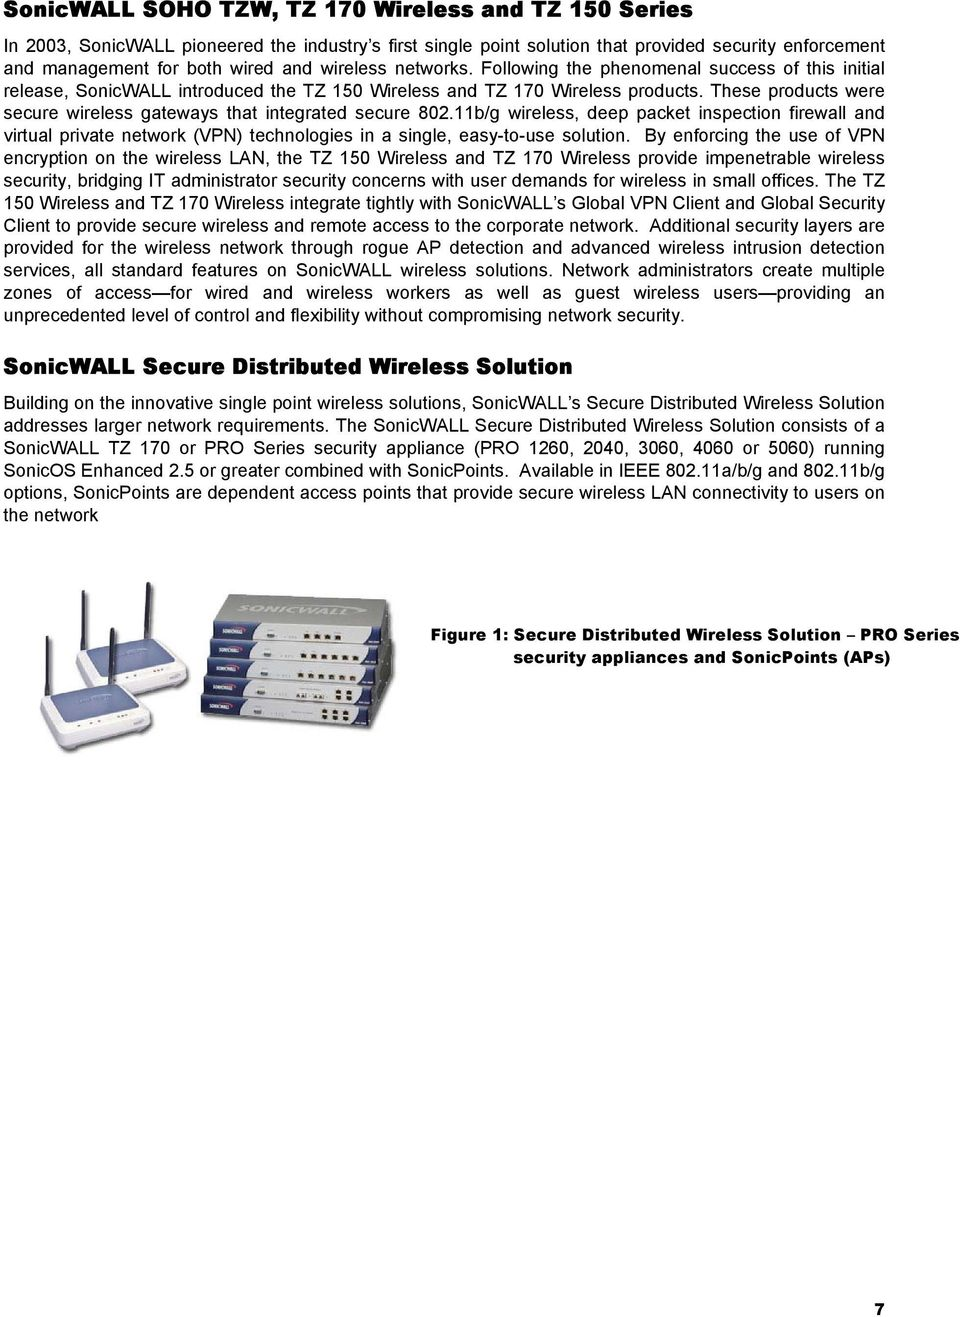 These products were secure wireless gateways that integrated secure 802.